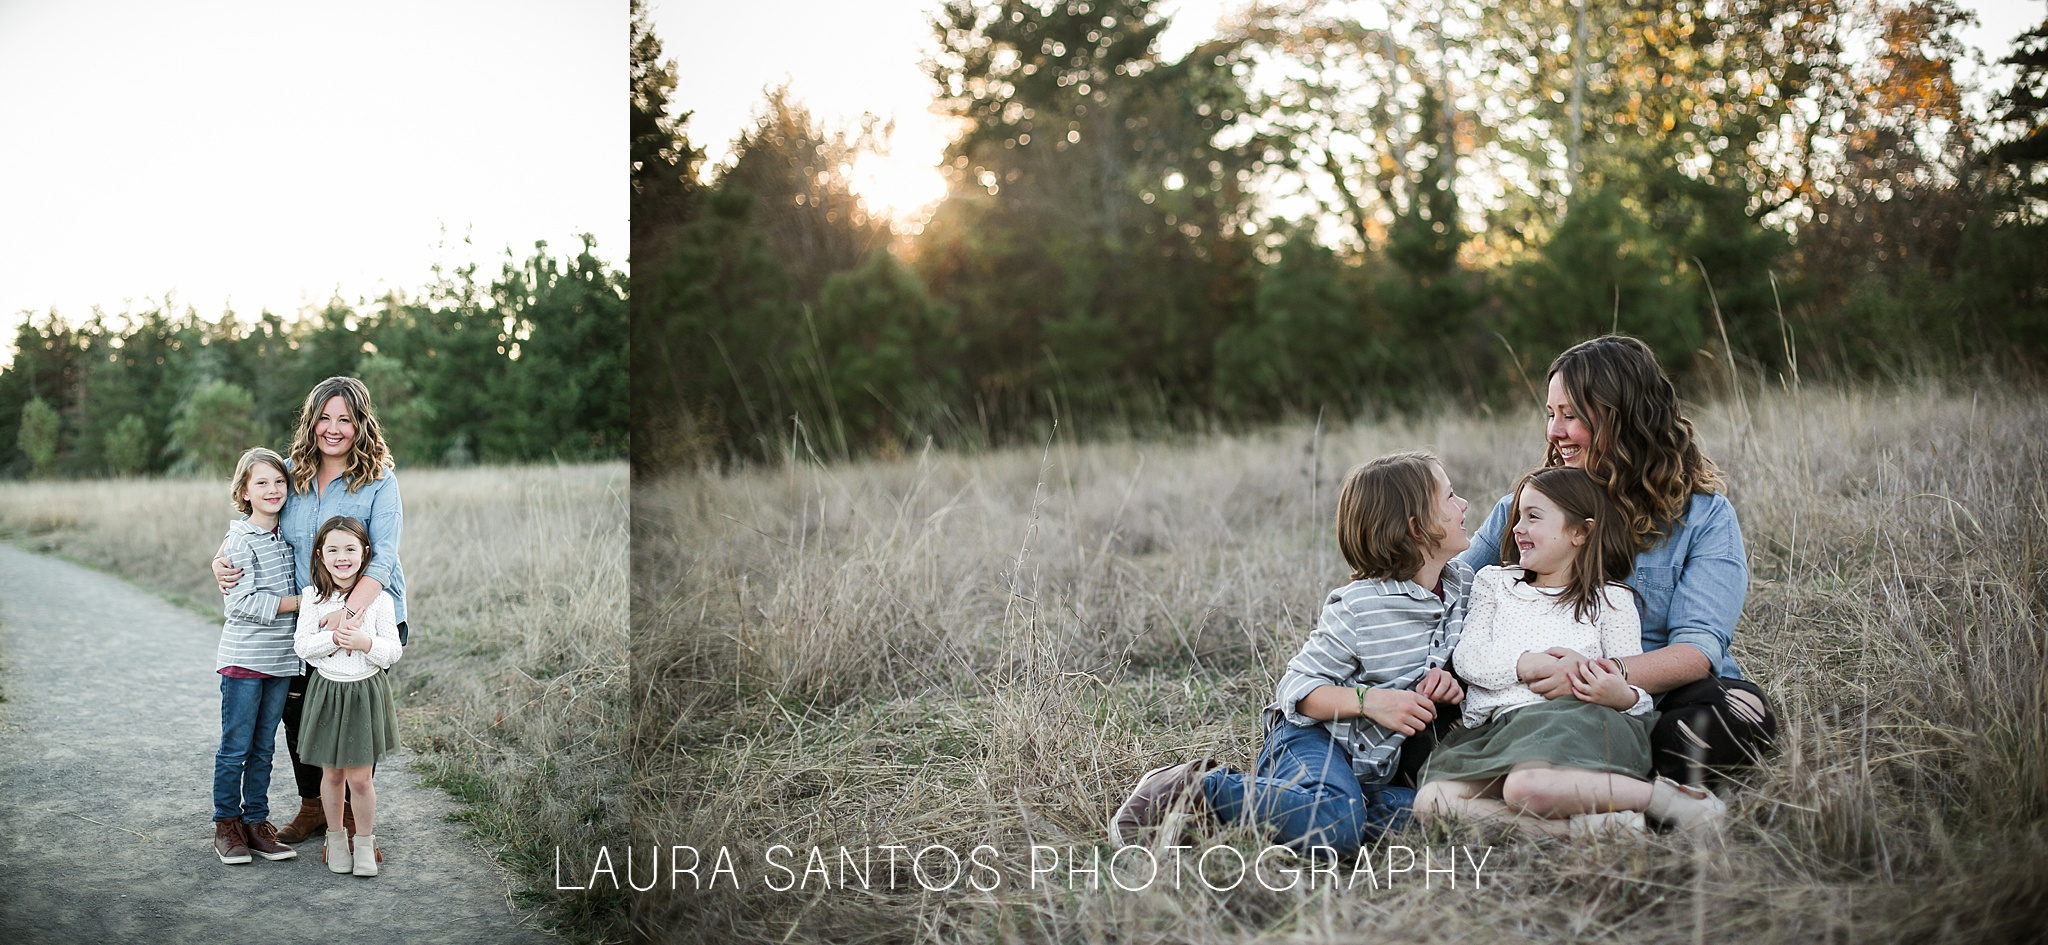 Laura Santos Photography Portland Oregon Family Photographer_0908.jpg